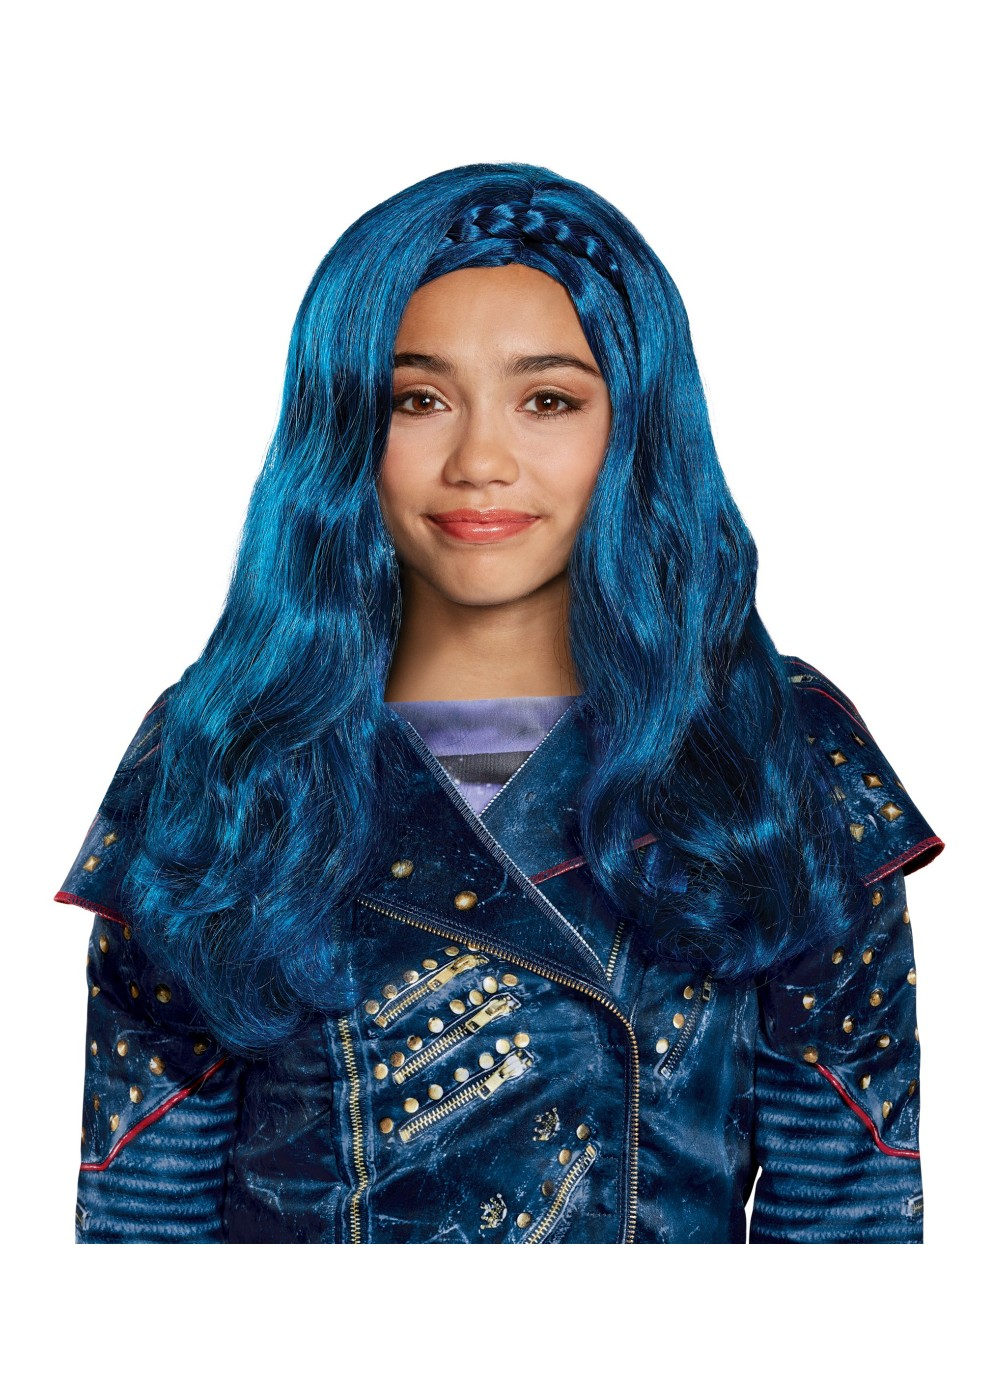 Descendants Evie Girls Wig Disney Costumes